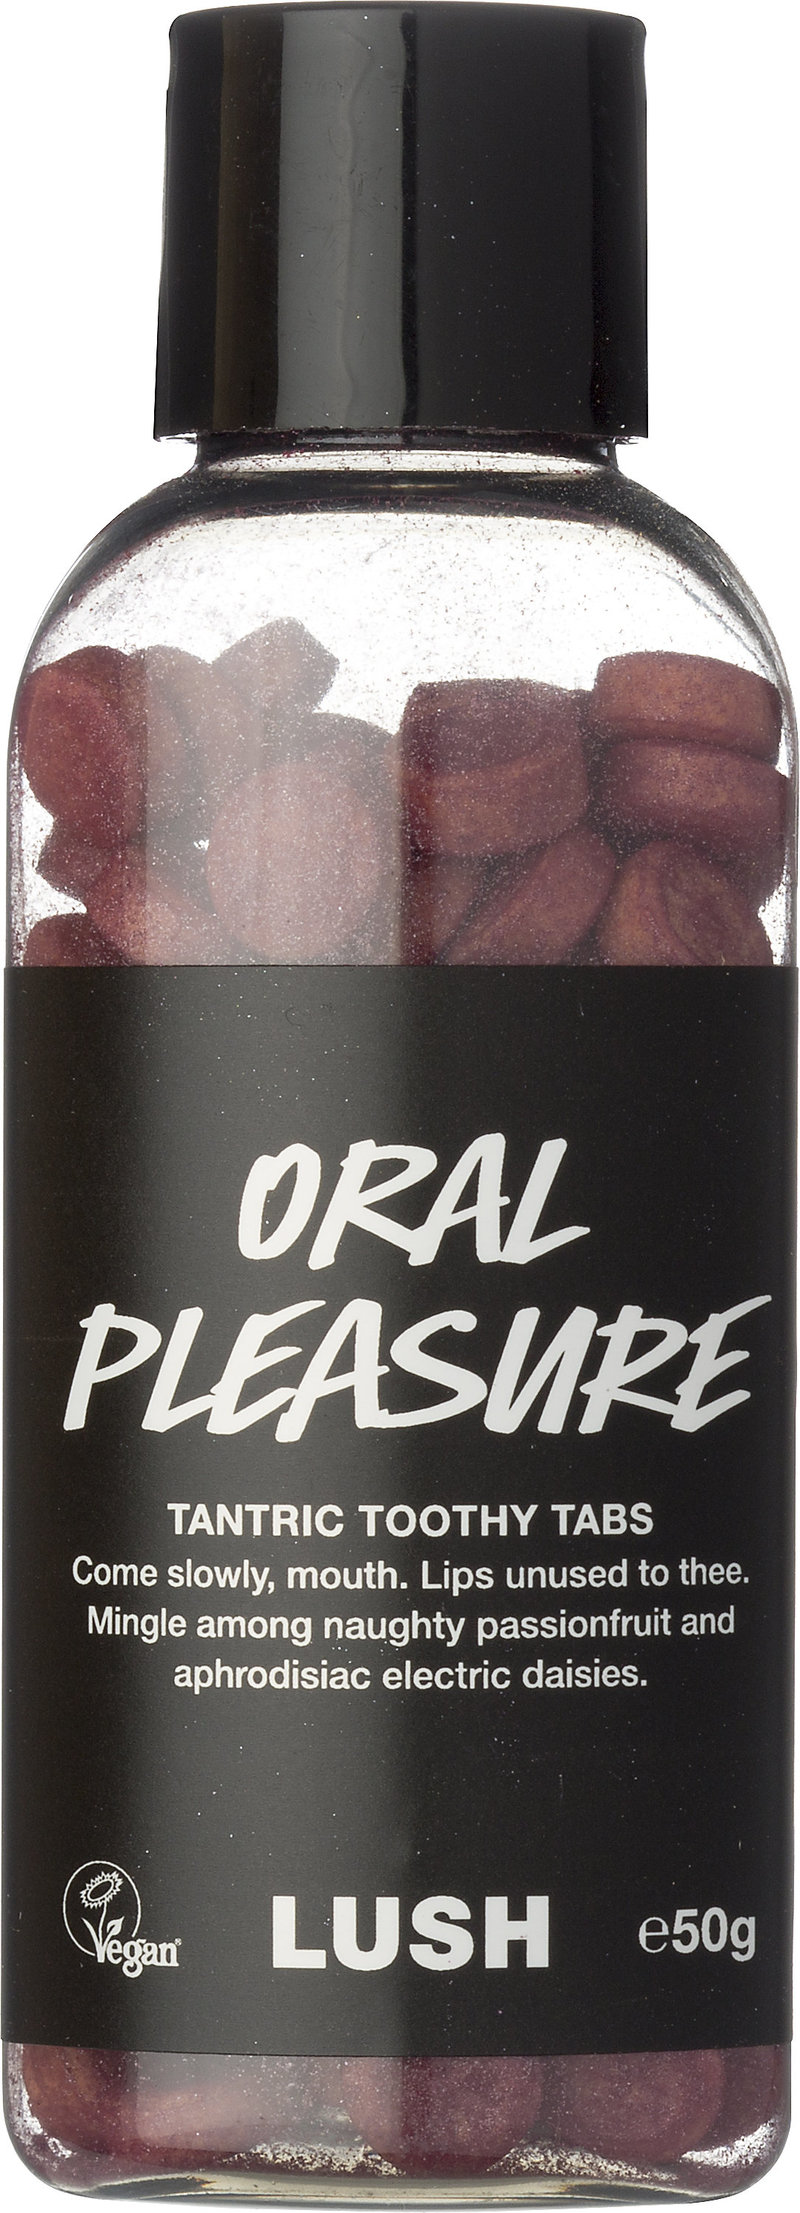 product_mouth_oral_pleasure.jpg